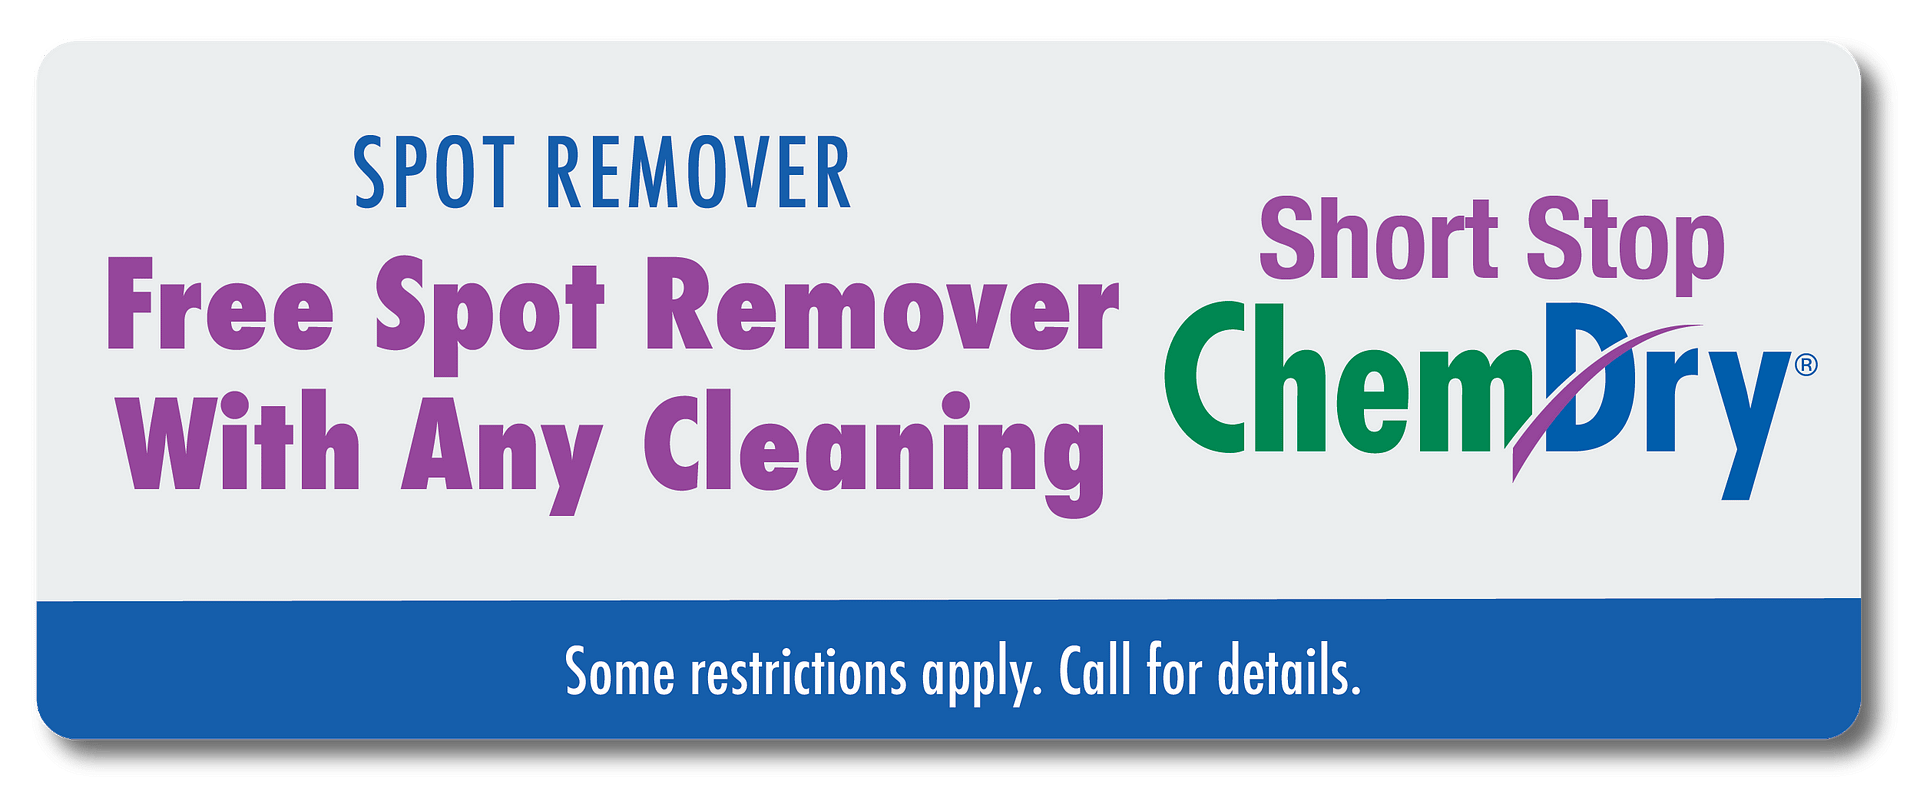 free spot remover with carpet cleaning coupon